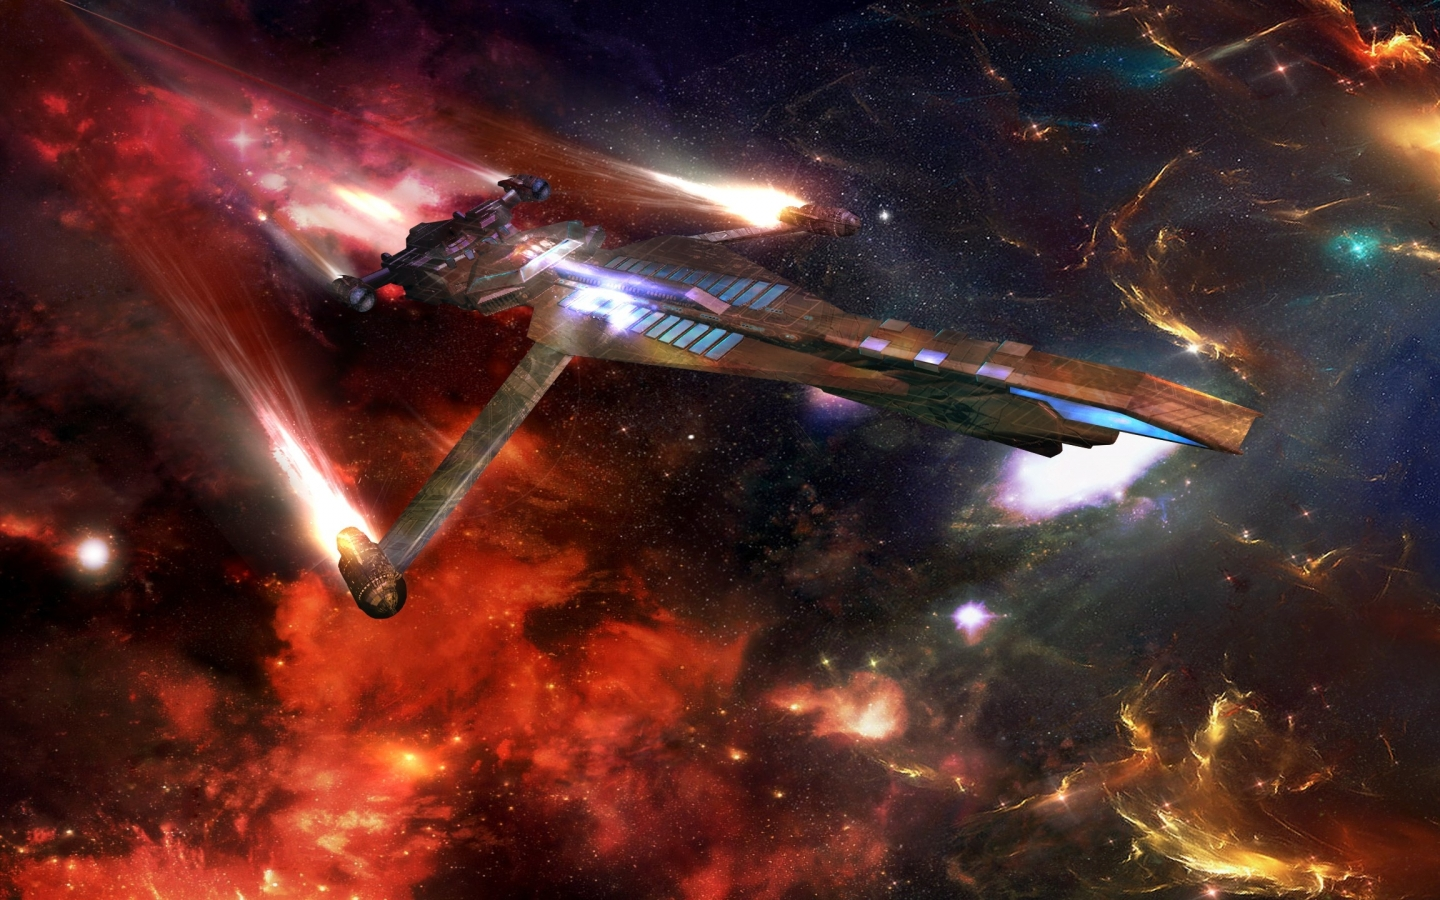 outer space space shuttle photomanipulations 2560x1440 wallpaper Art 1440x900